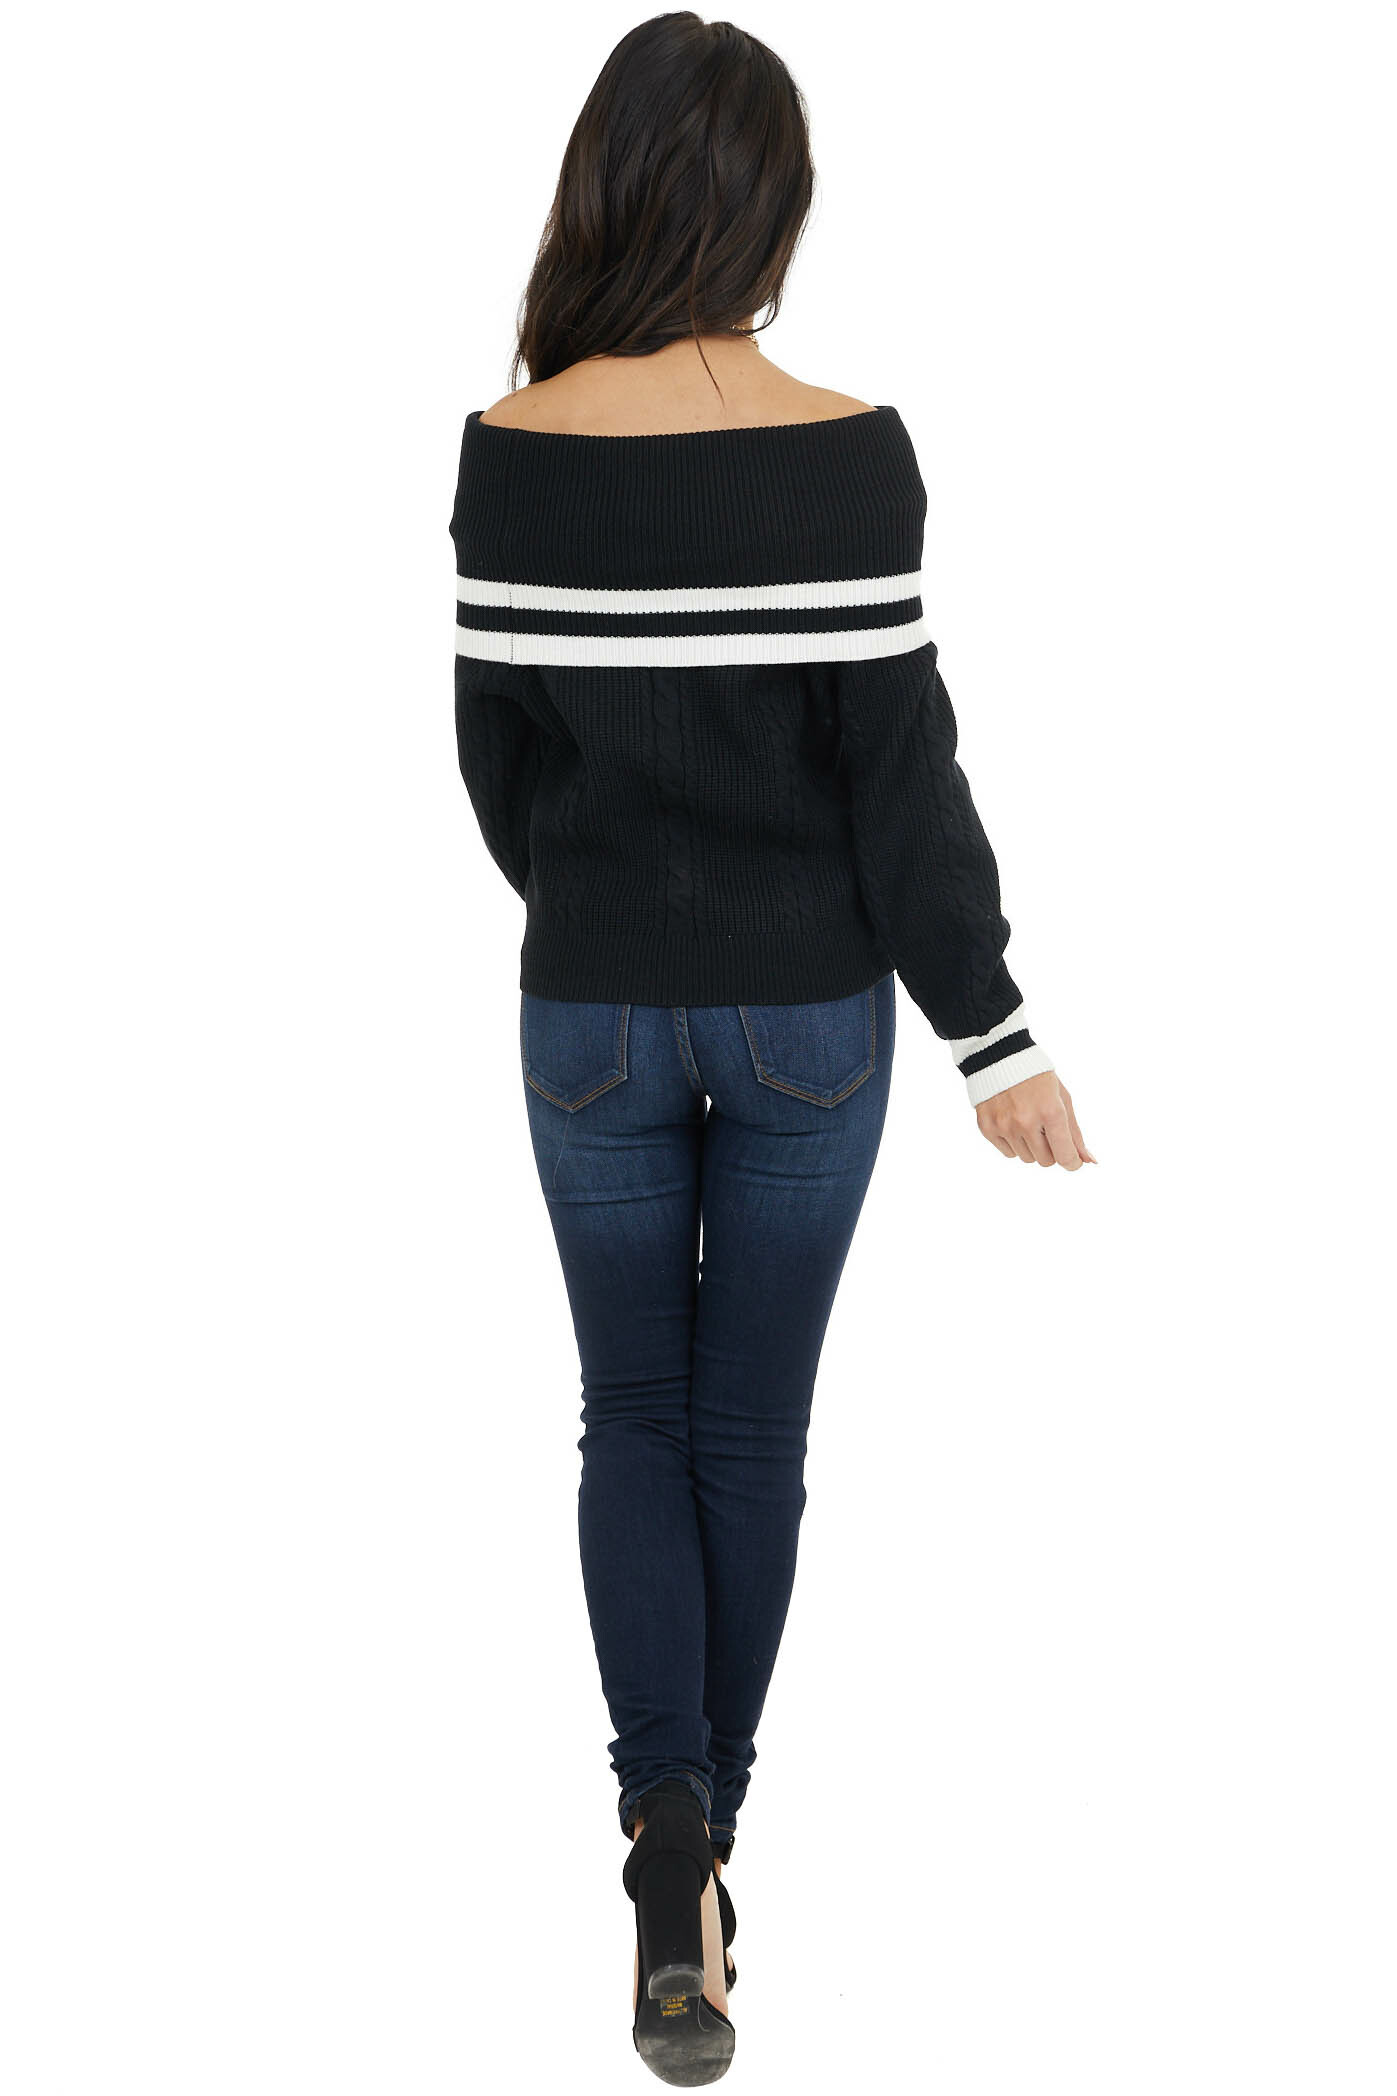 Black Cable Knit Off Shoulder Sweater with White Stripes